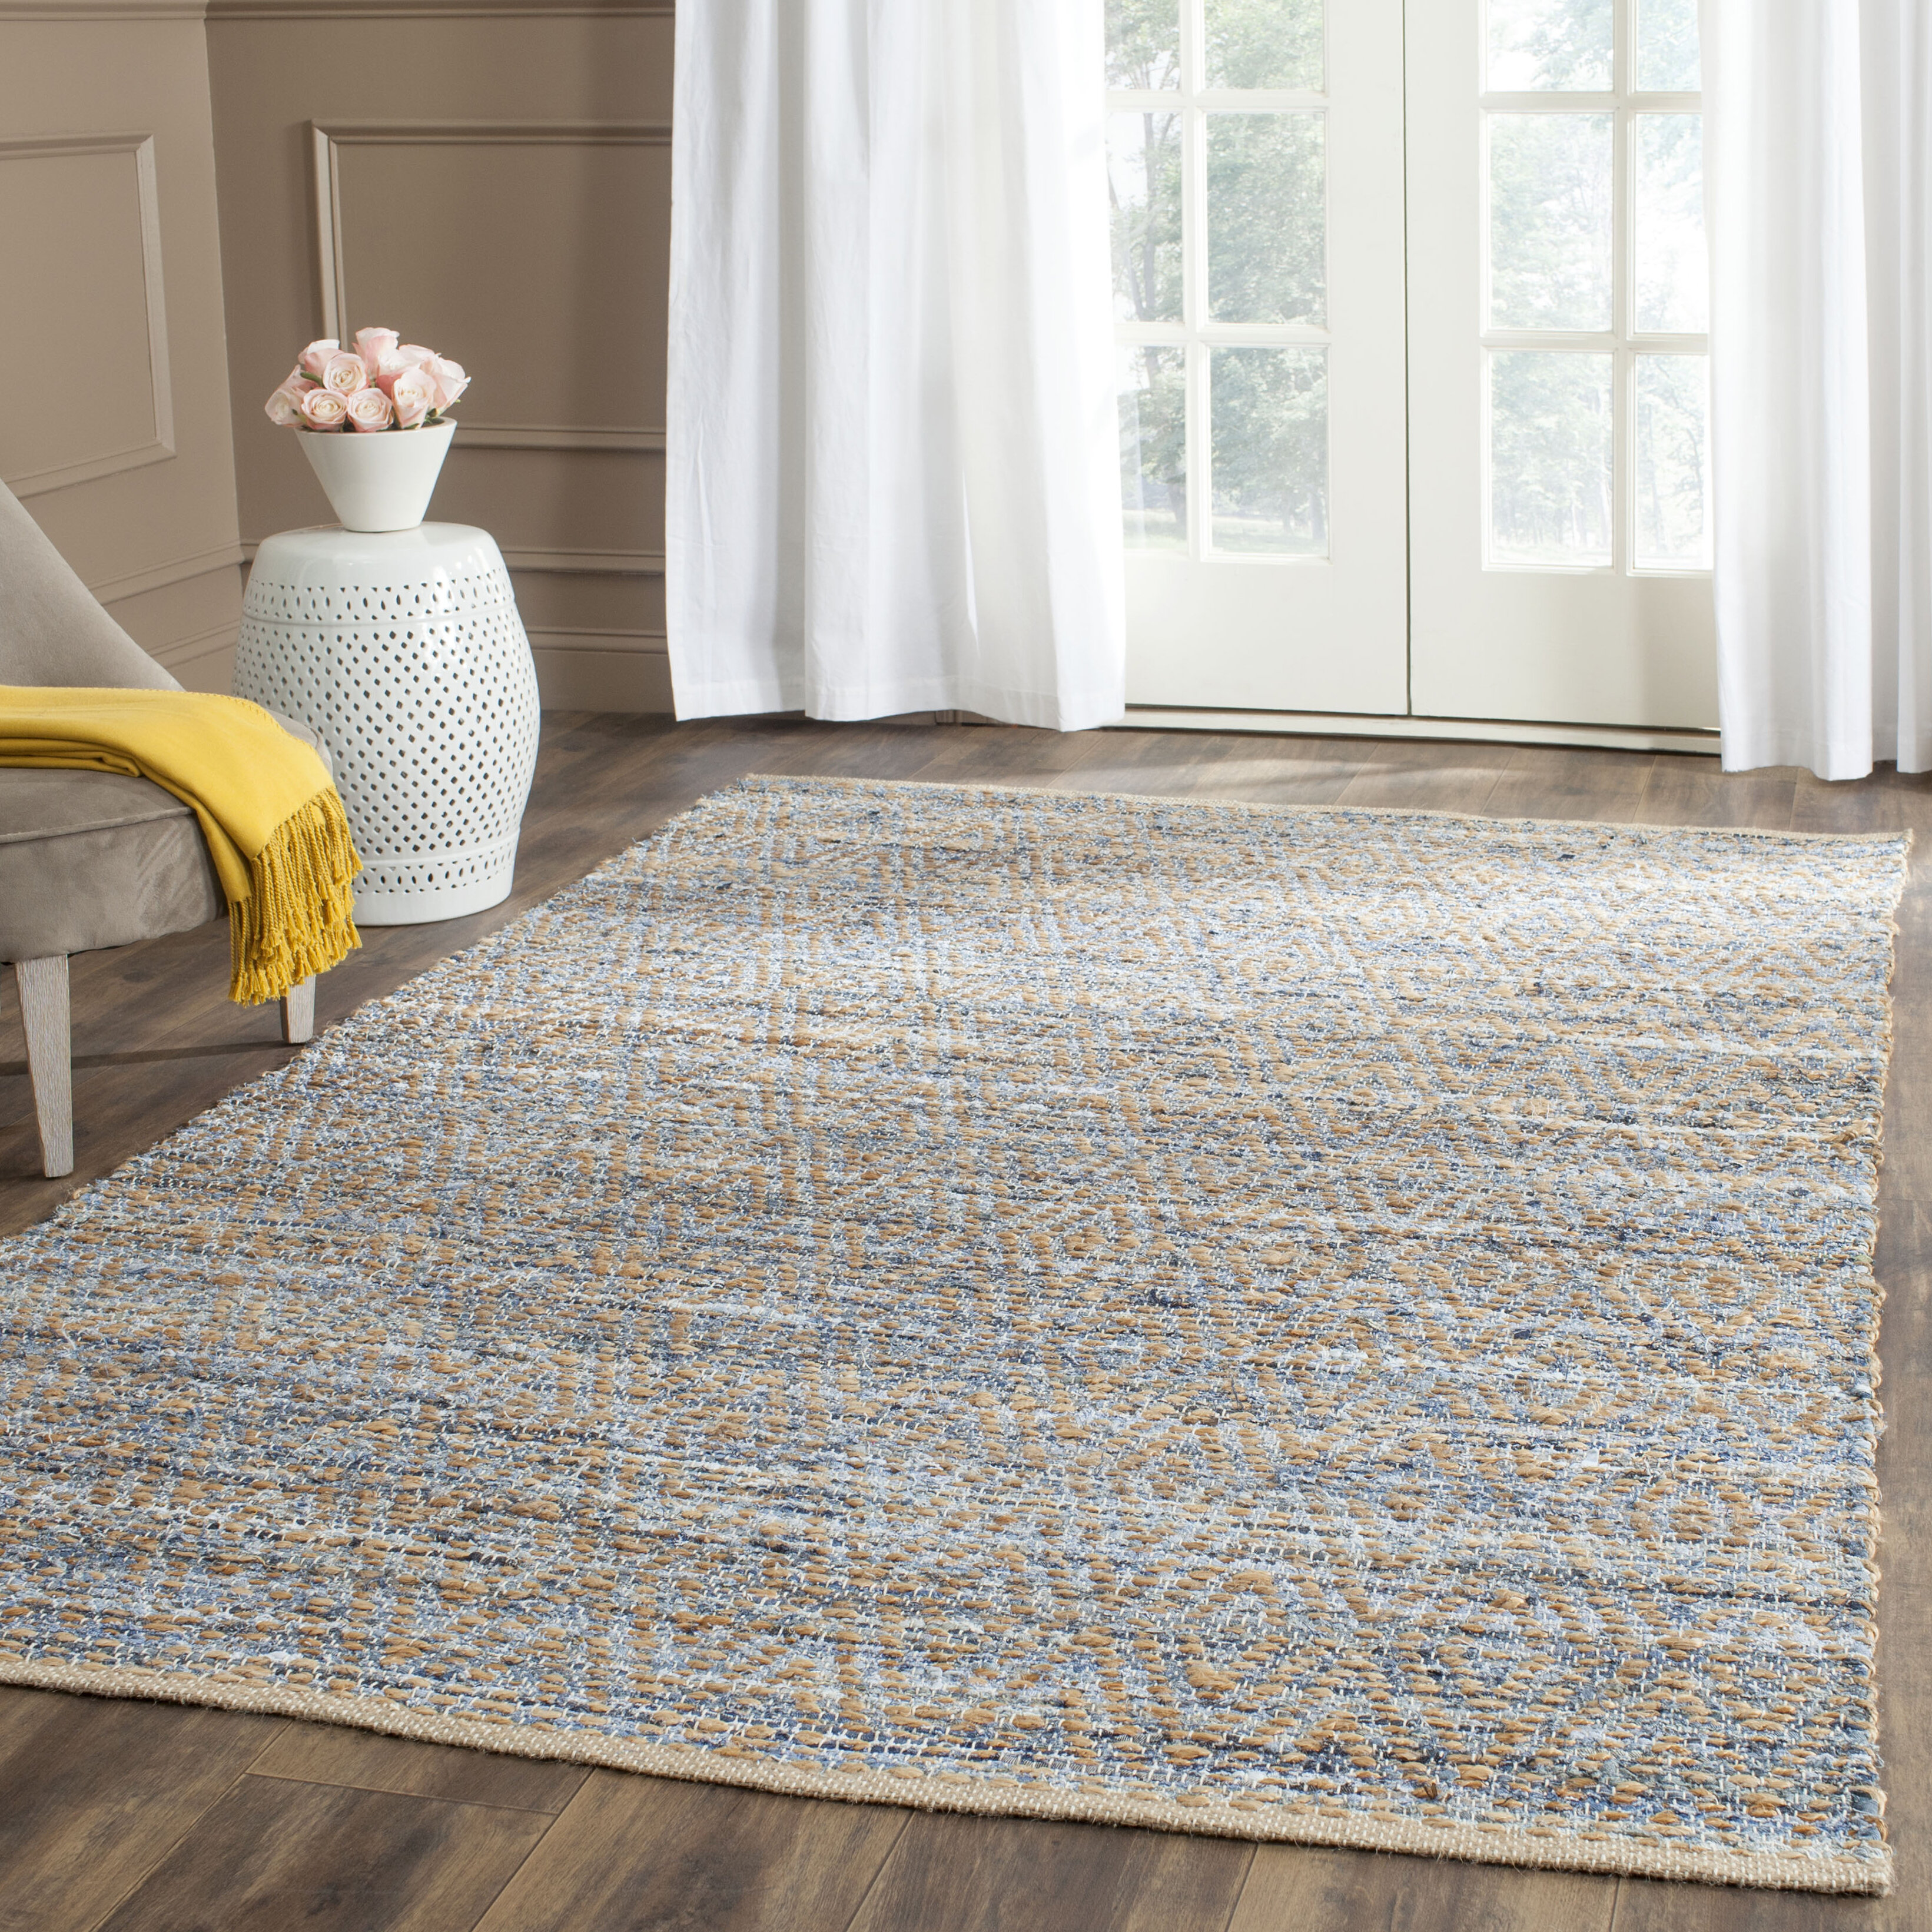 3 X 5 Striped Area Rugs You Ll Love In 2021 Wayfair